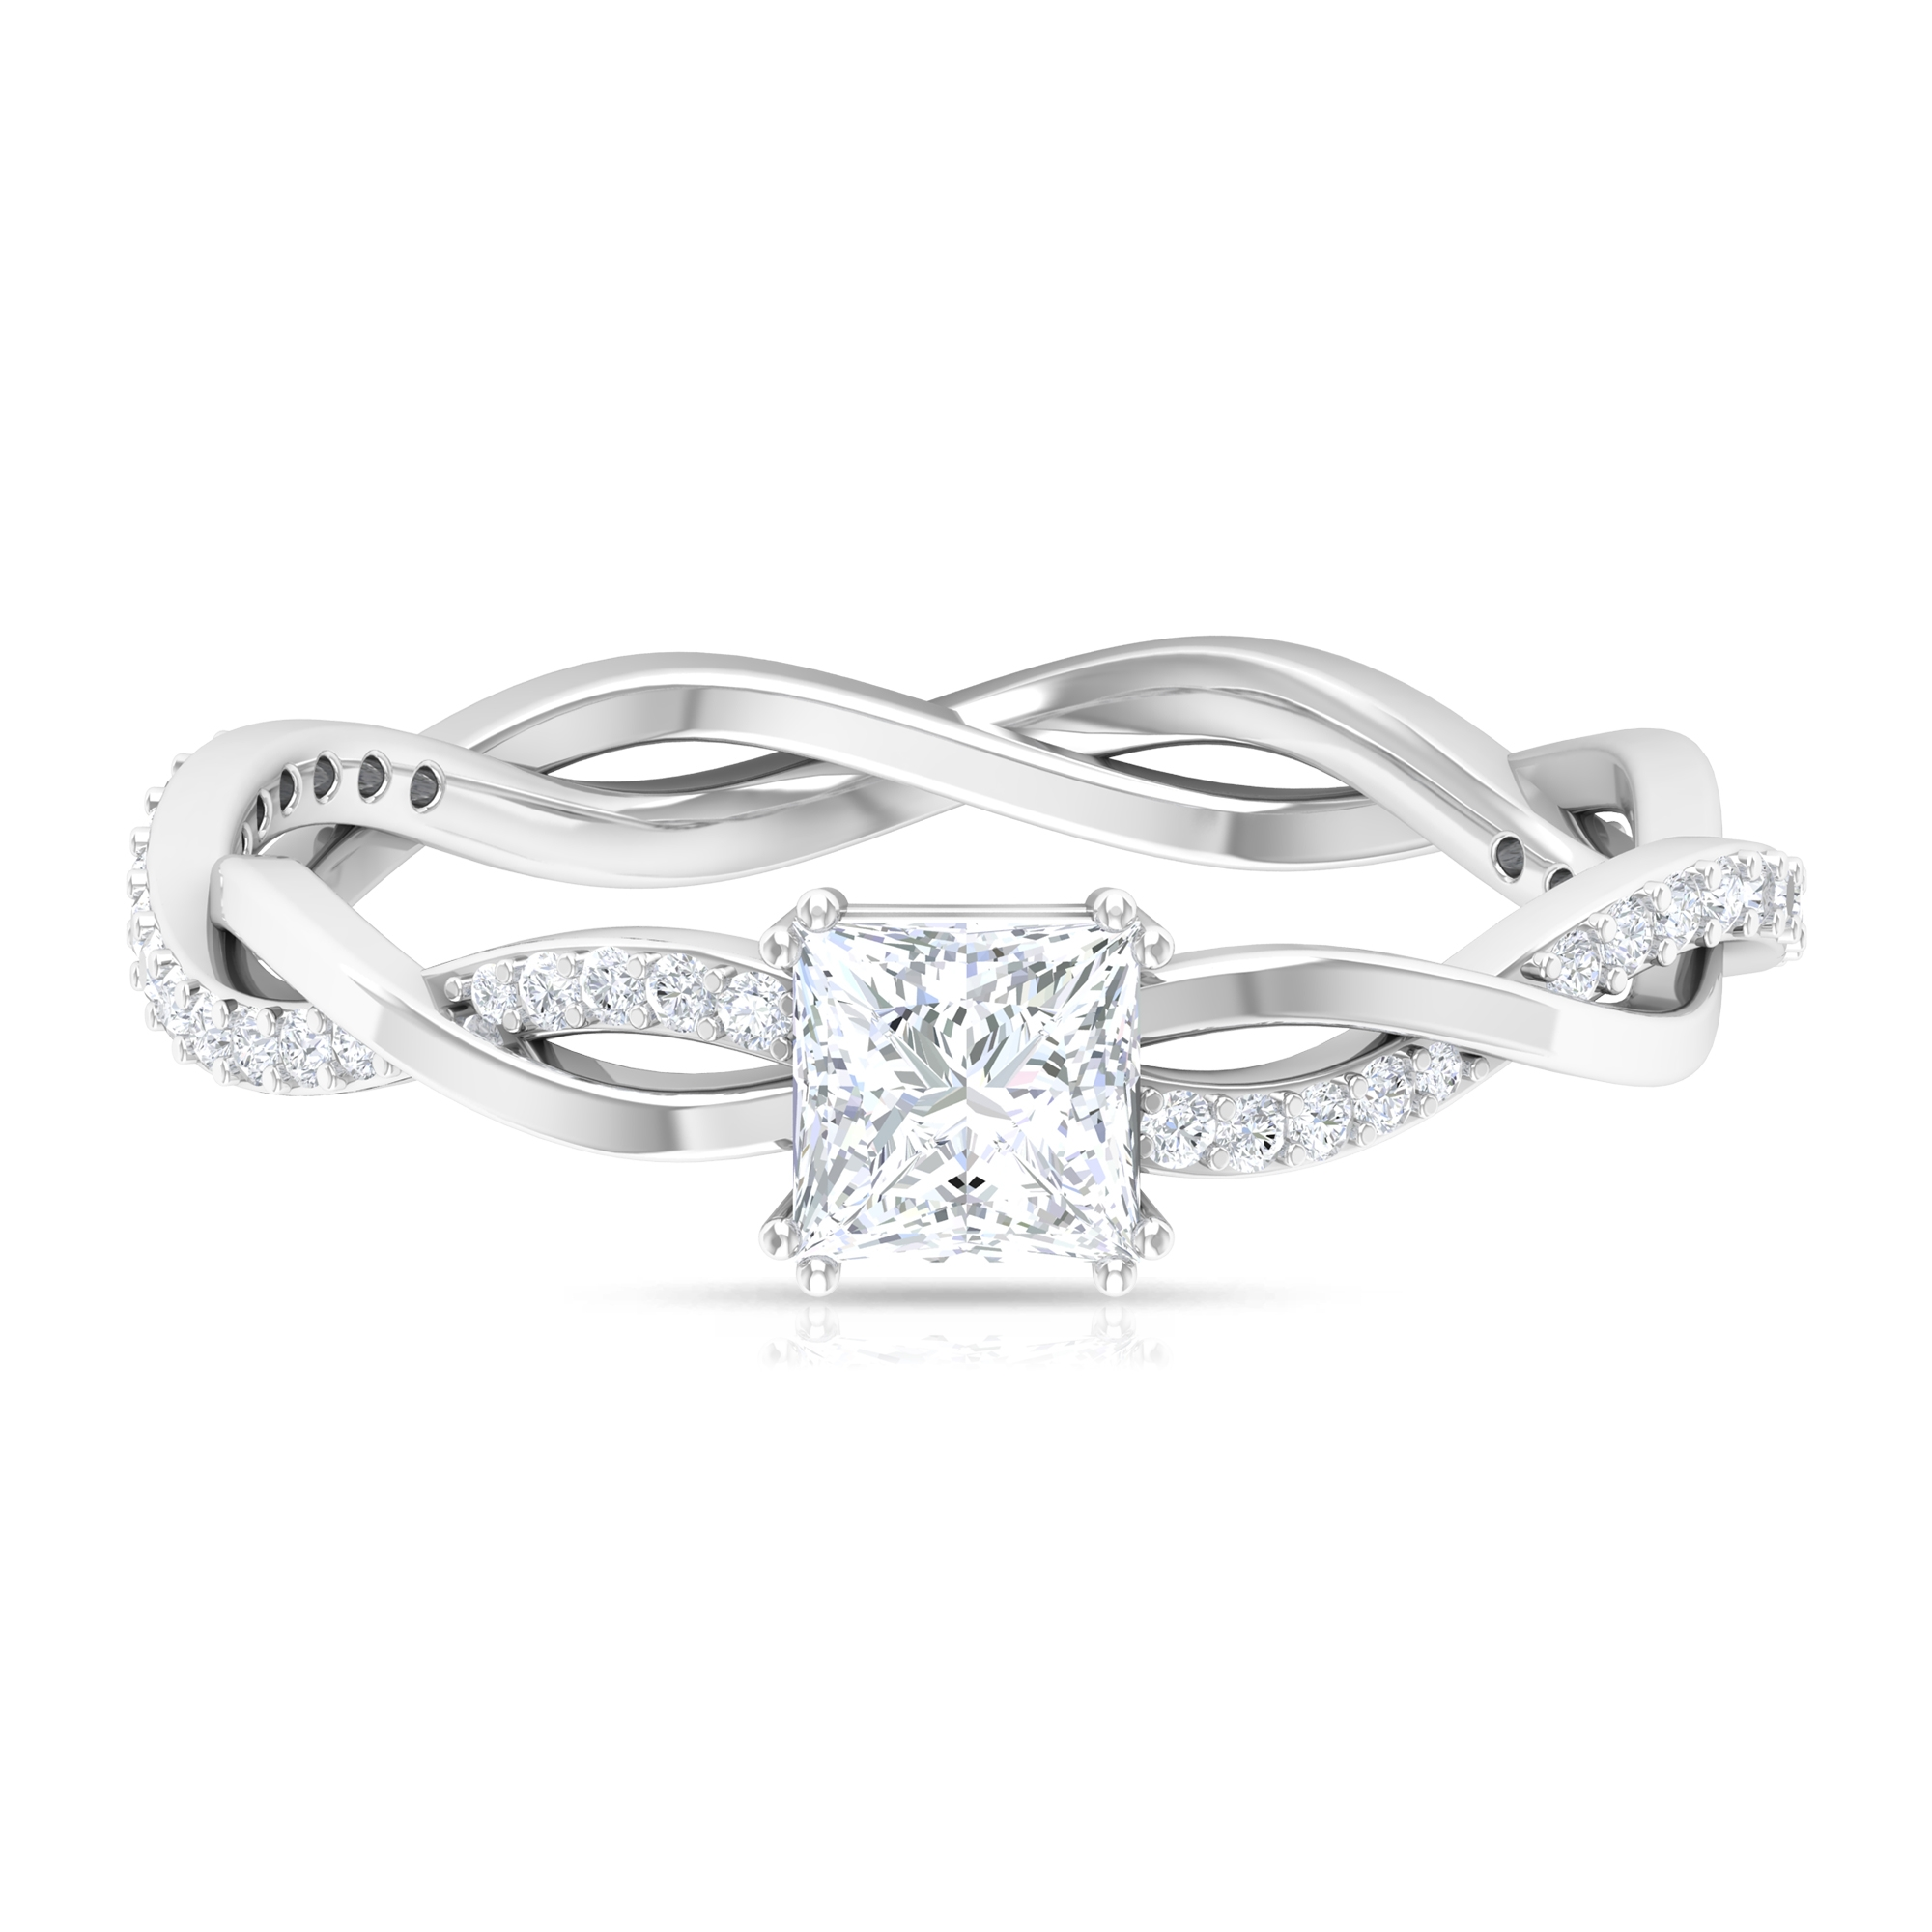 3/4 CT Princess Cut Solitaire Diamond Braided Ring in Double Prong Setting